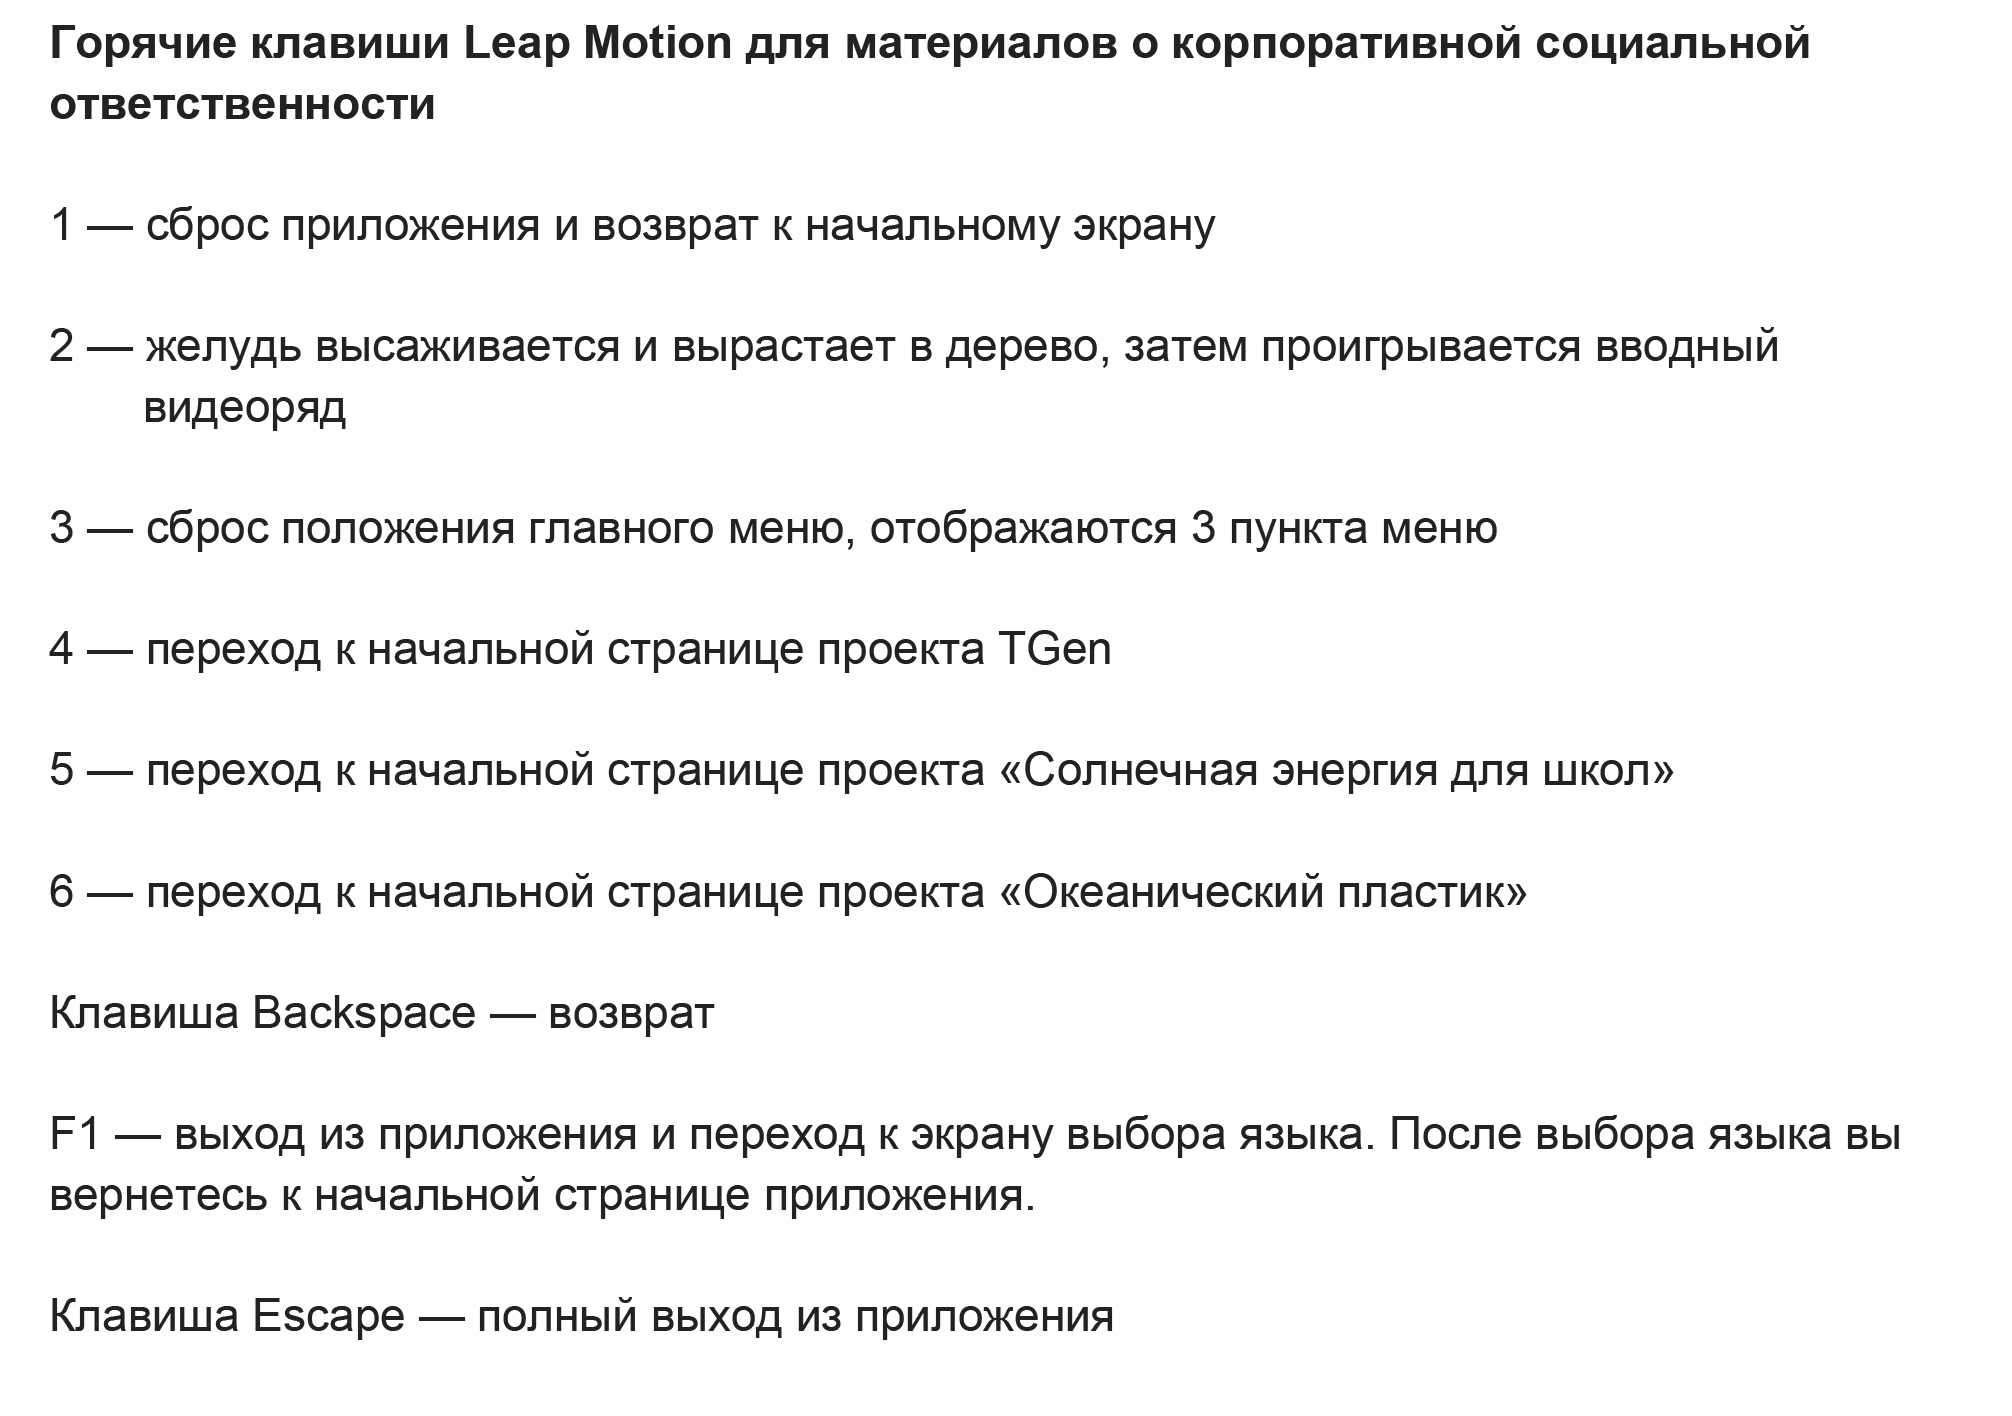 CSR Leap Motion - Hot Keys - Russian.jpg